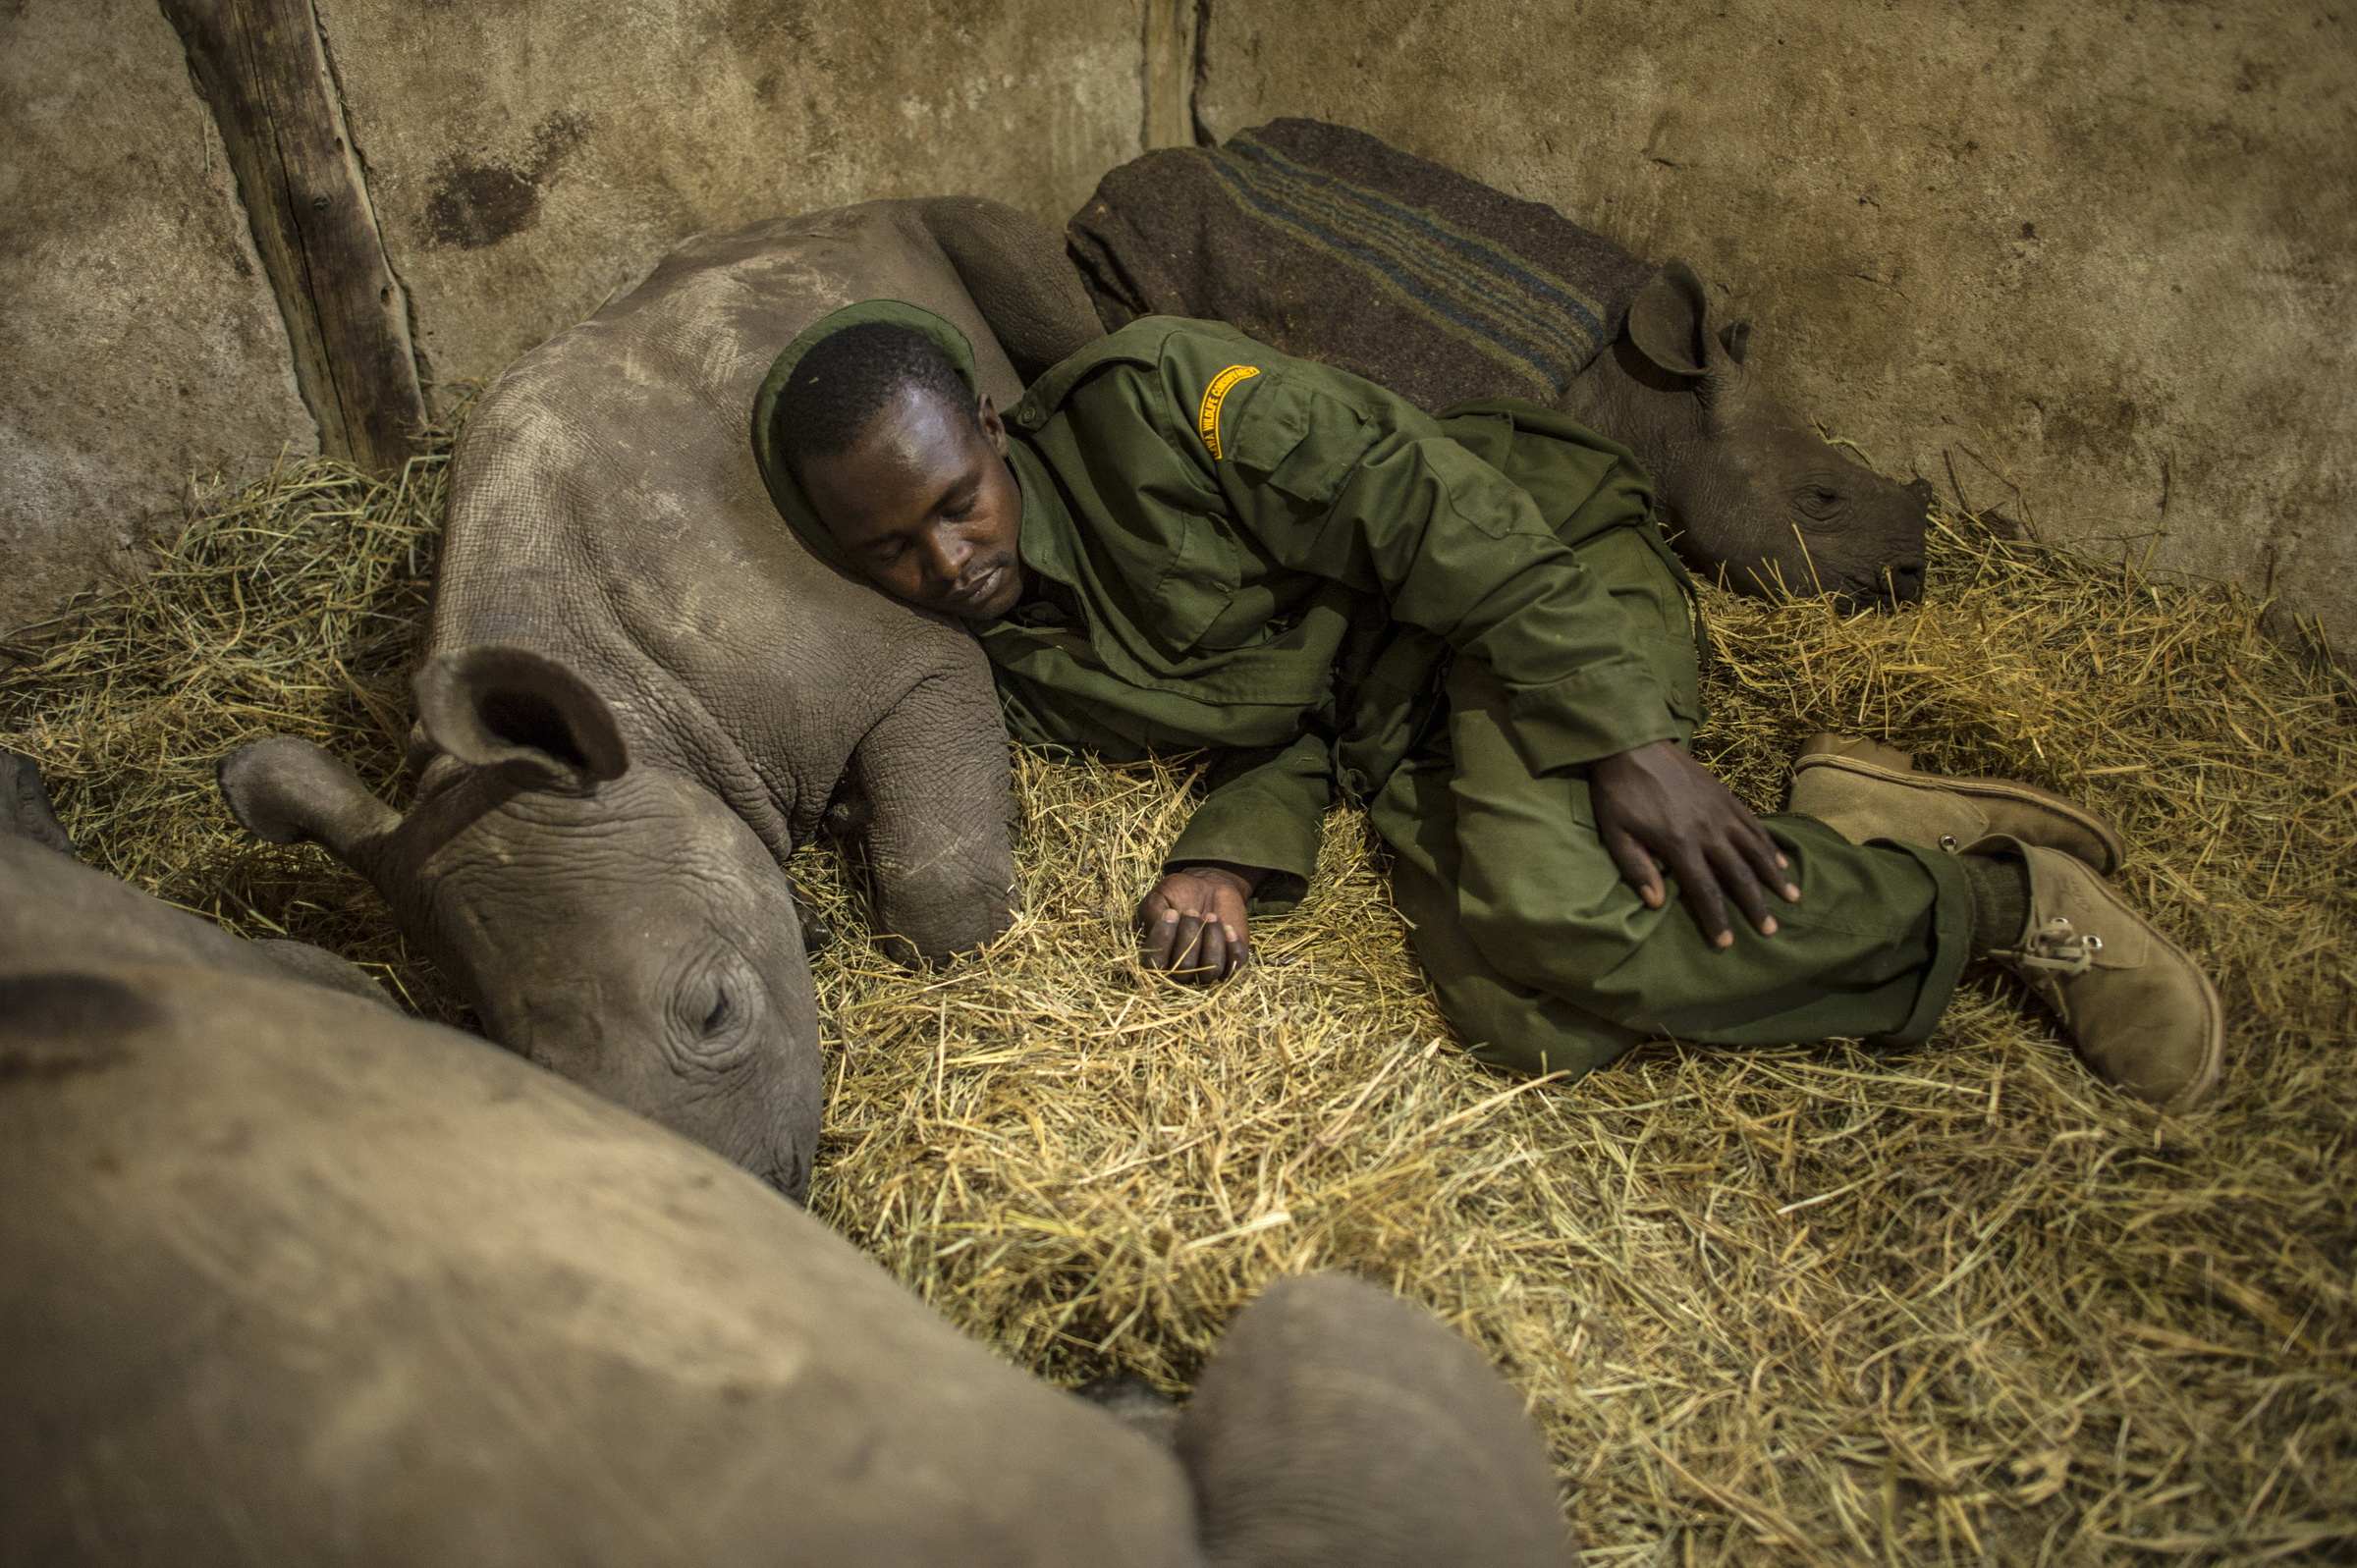 Yusuf , a keeper, sleeps with three orphaned baby rhinos at the Lewa Wildlife Conservancy  in northern Kenya . The youngest rhino on the right was orphaned when poachers killed his mother on Ol Pejeta Conservancy. 2013   © Ami Vitale